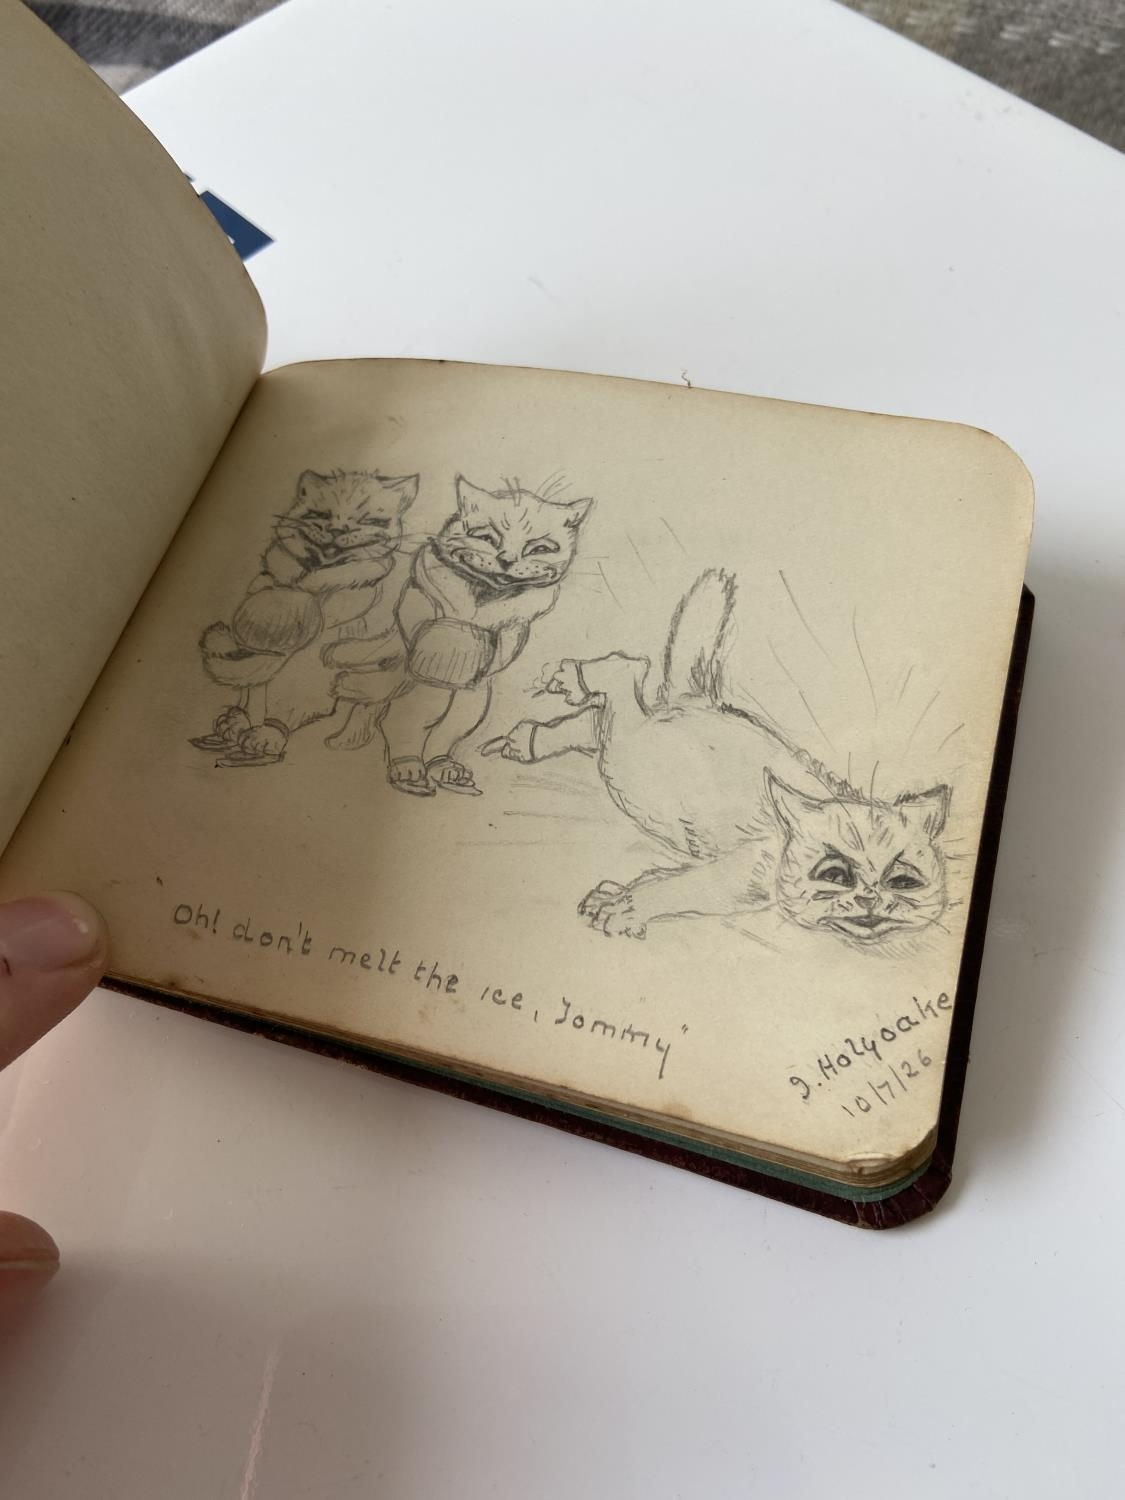 An old autograph album containing various poems, sayings & doodles - Image 16 of 18